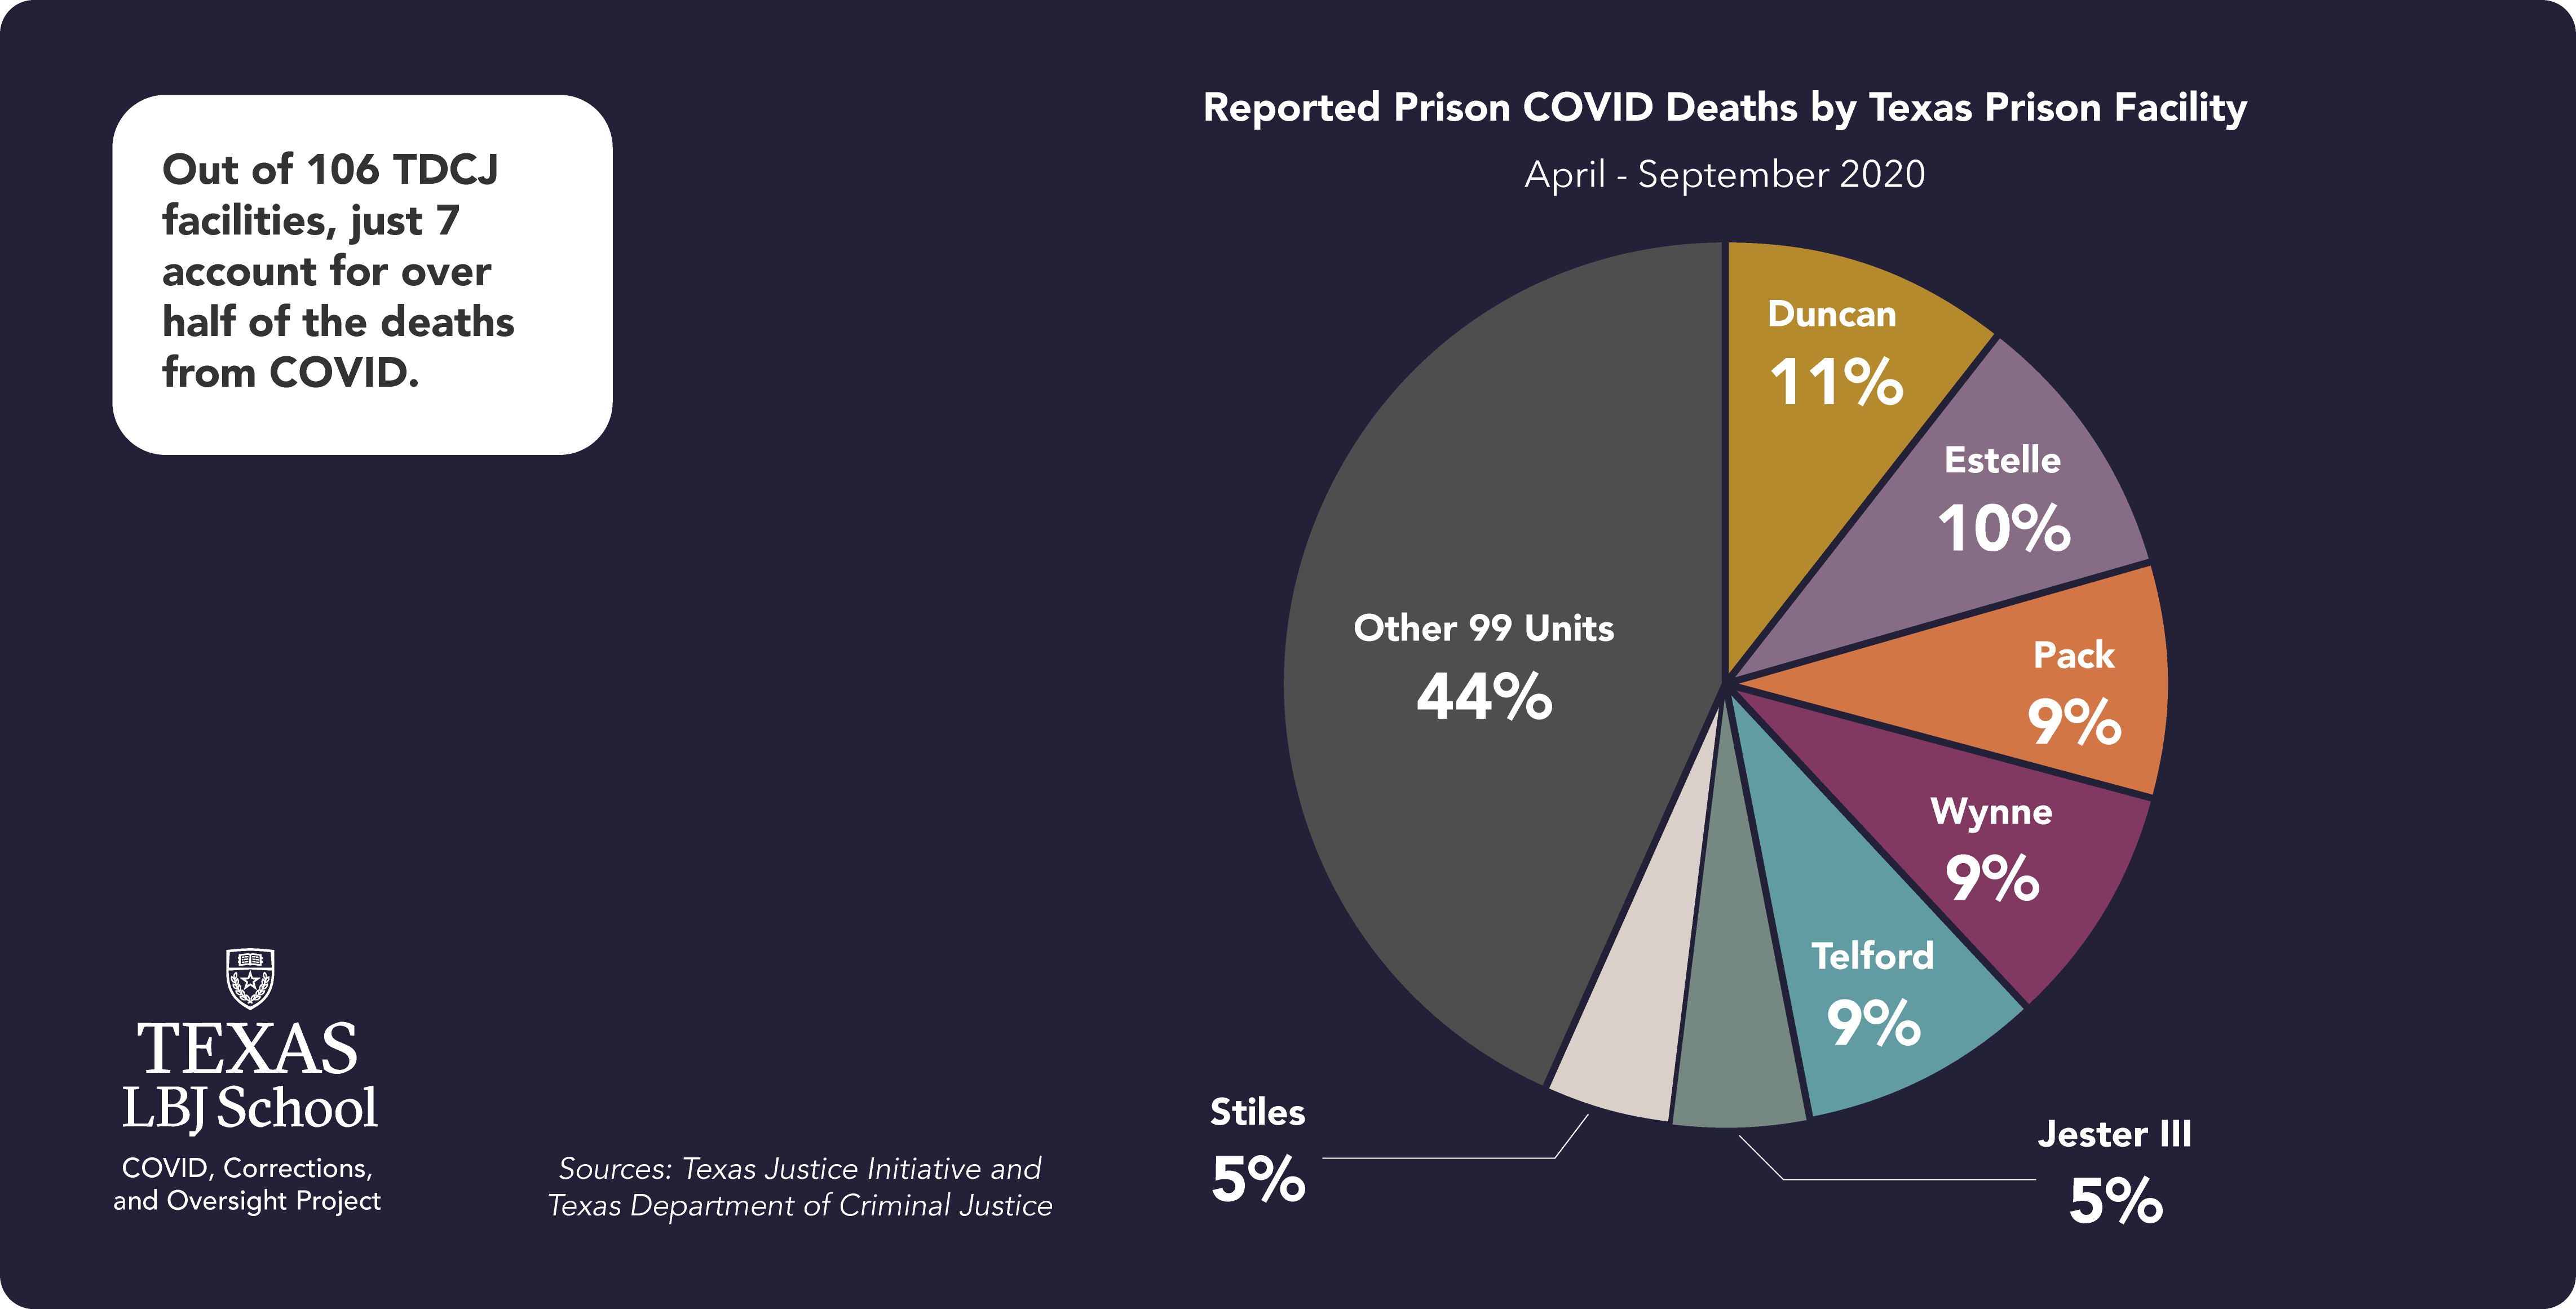 Deitch report: Reported prison COVID deaths by Texas prison facility